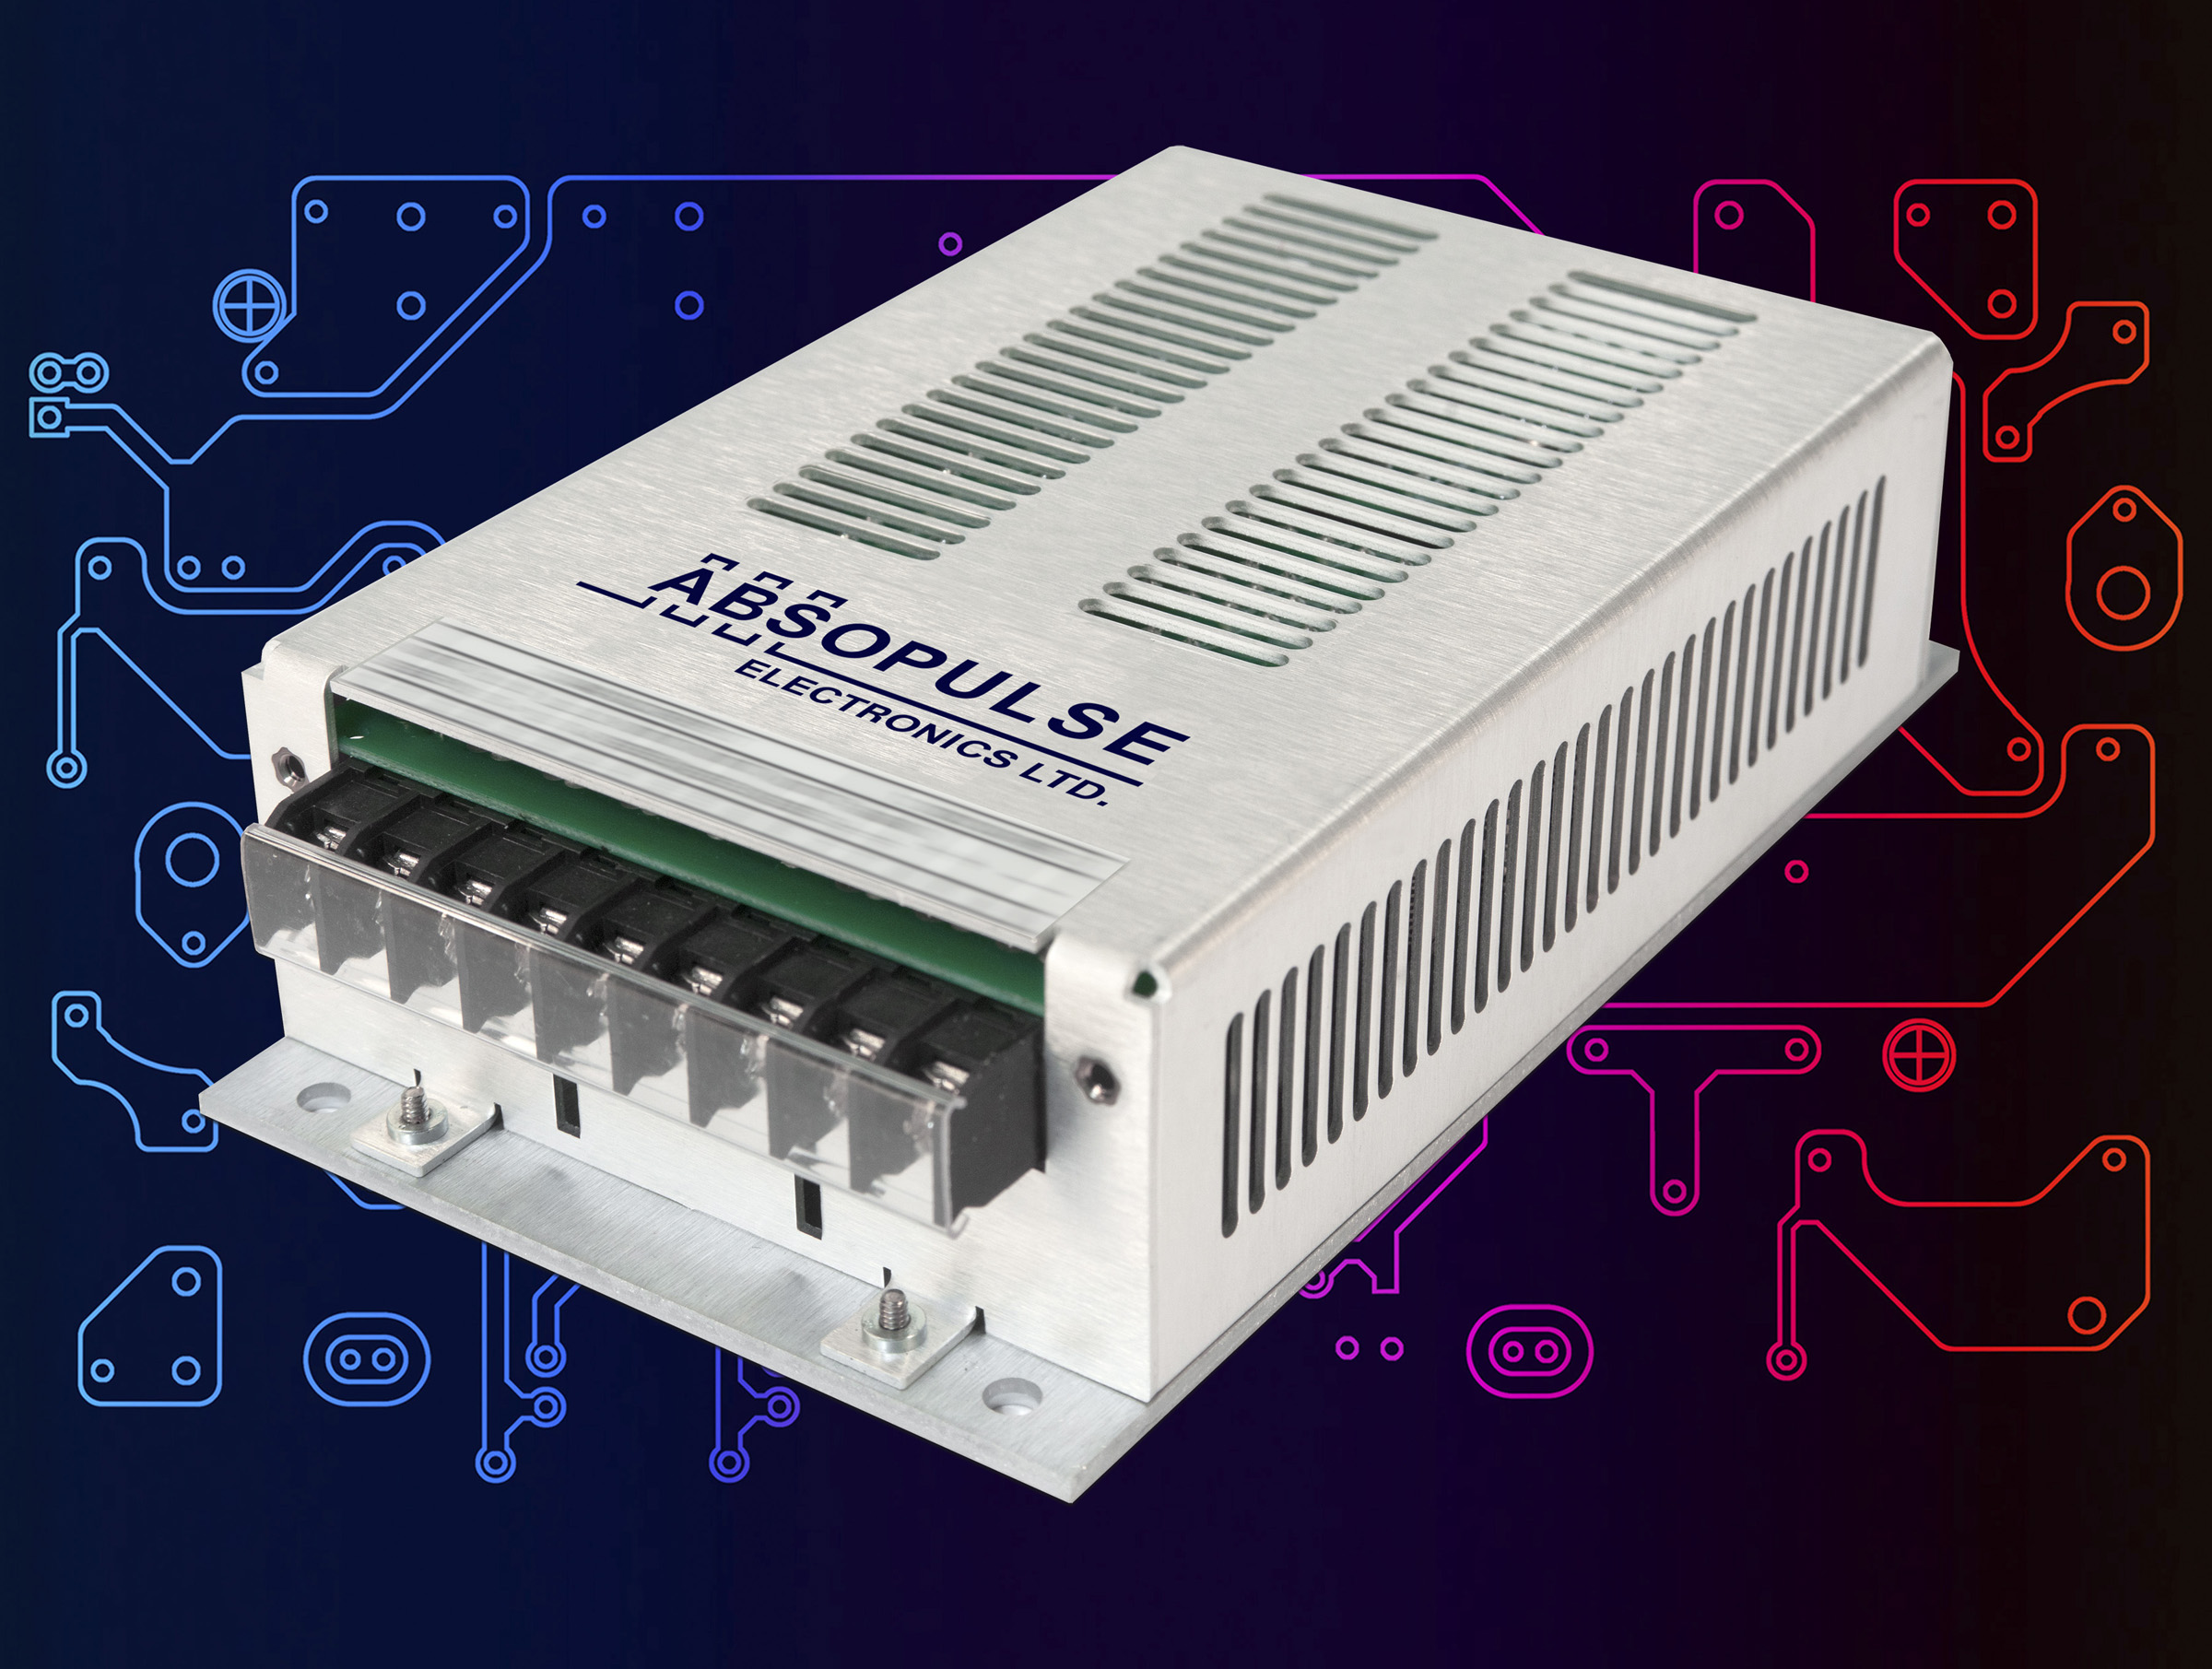 100VA DC-AC Sine Wave Inverters Offer Three Input Voltages and a Wide Input Range